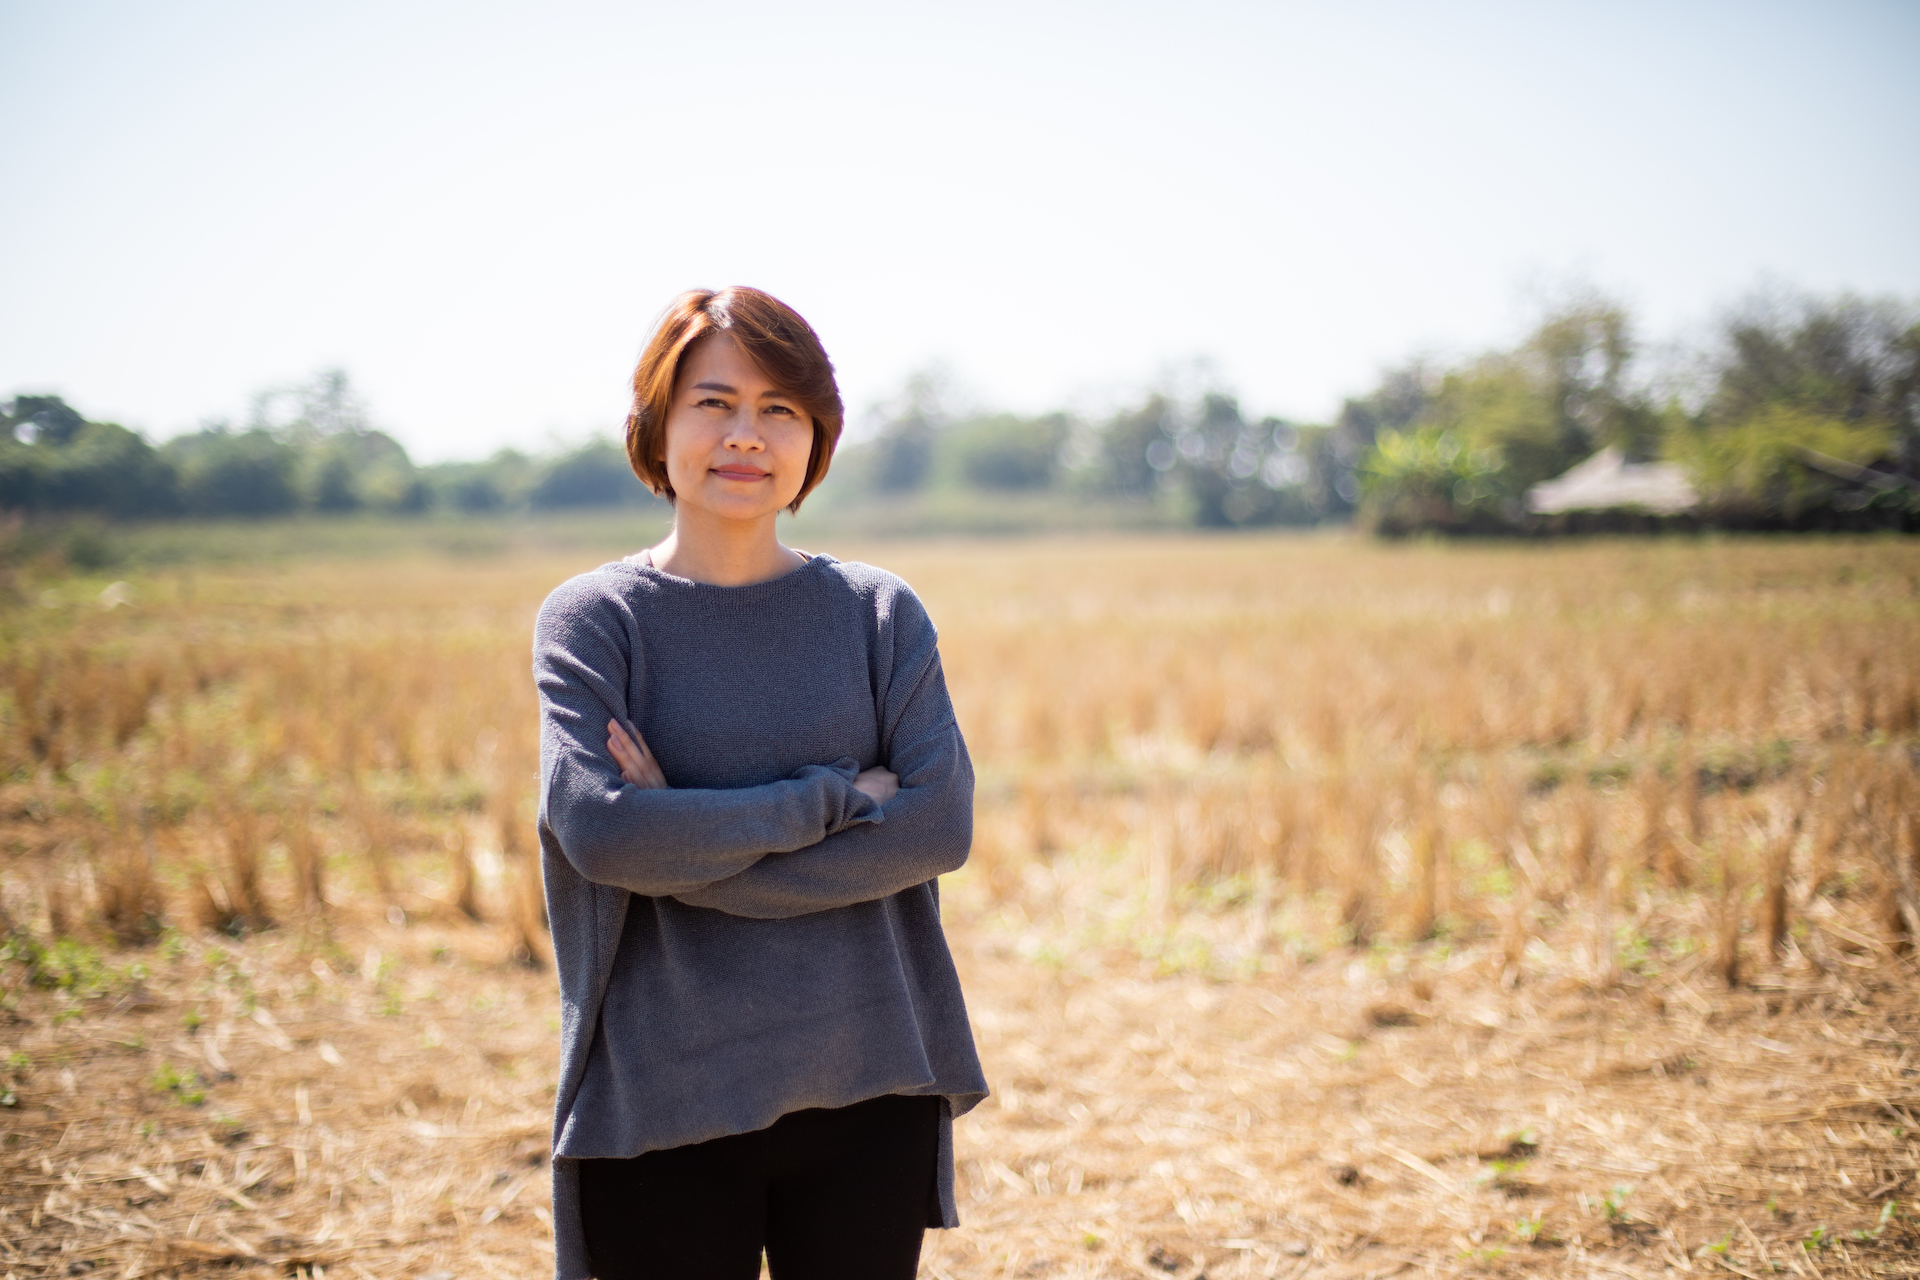 Kriddanchalee, Compassion Thailand's Senior Manager of Program Support, is wearing a gray shirt and is standing on a rice paddy.